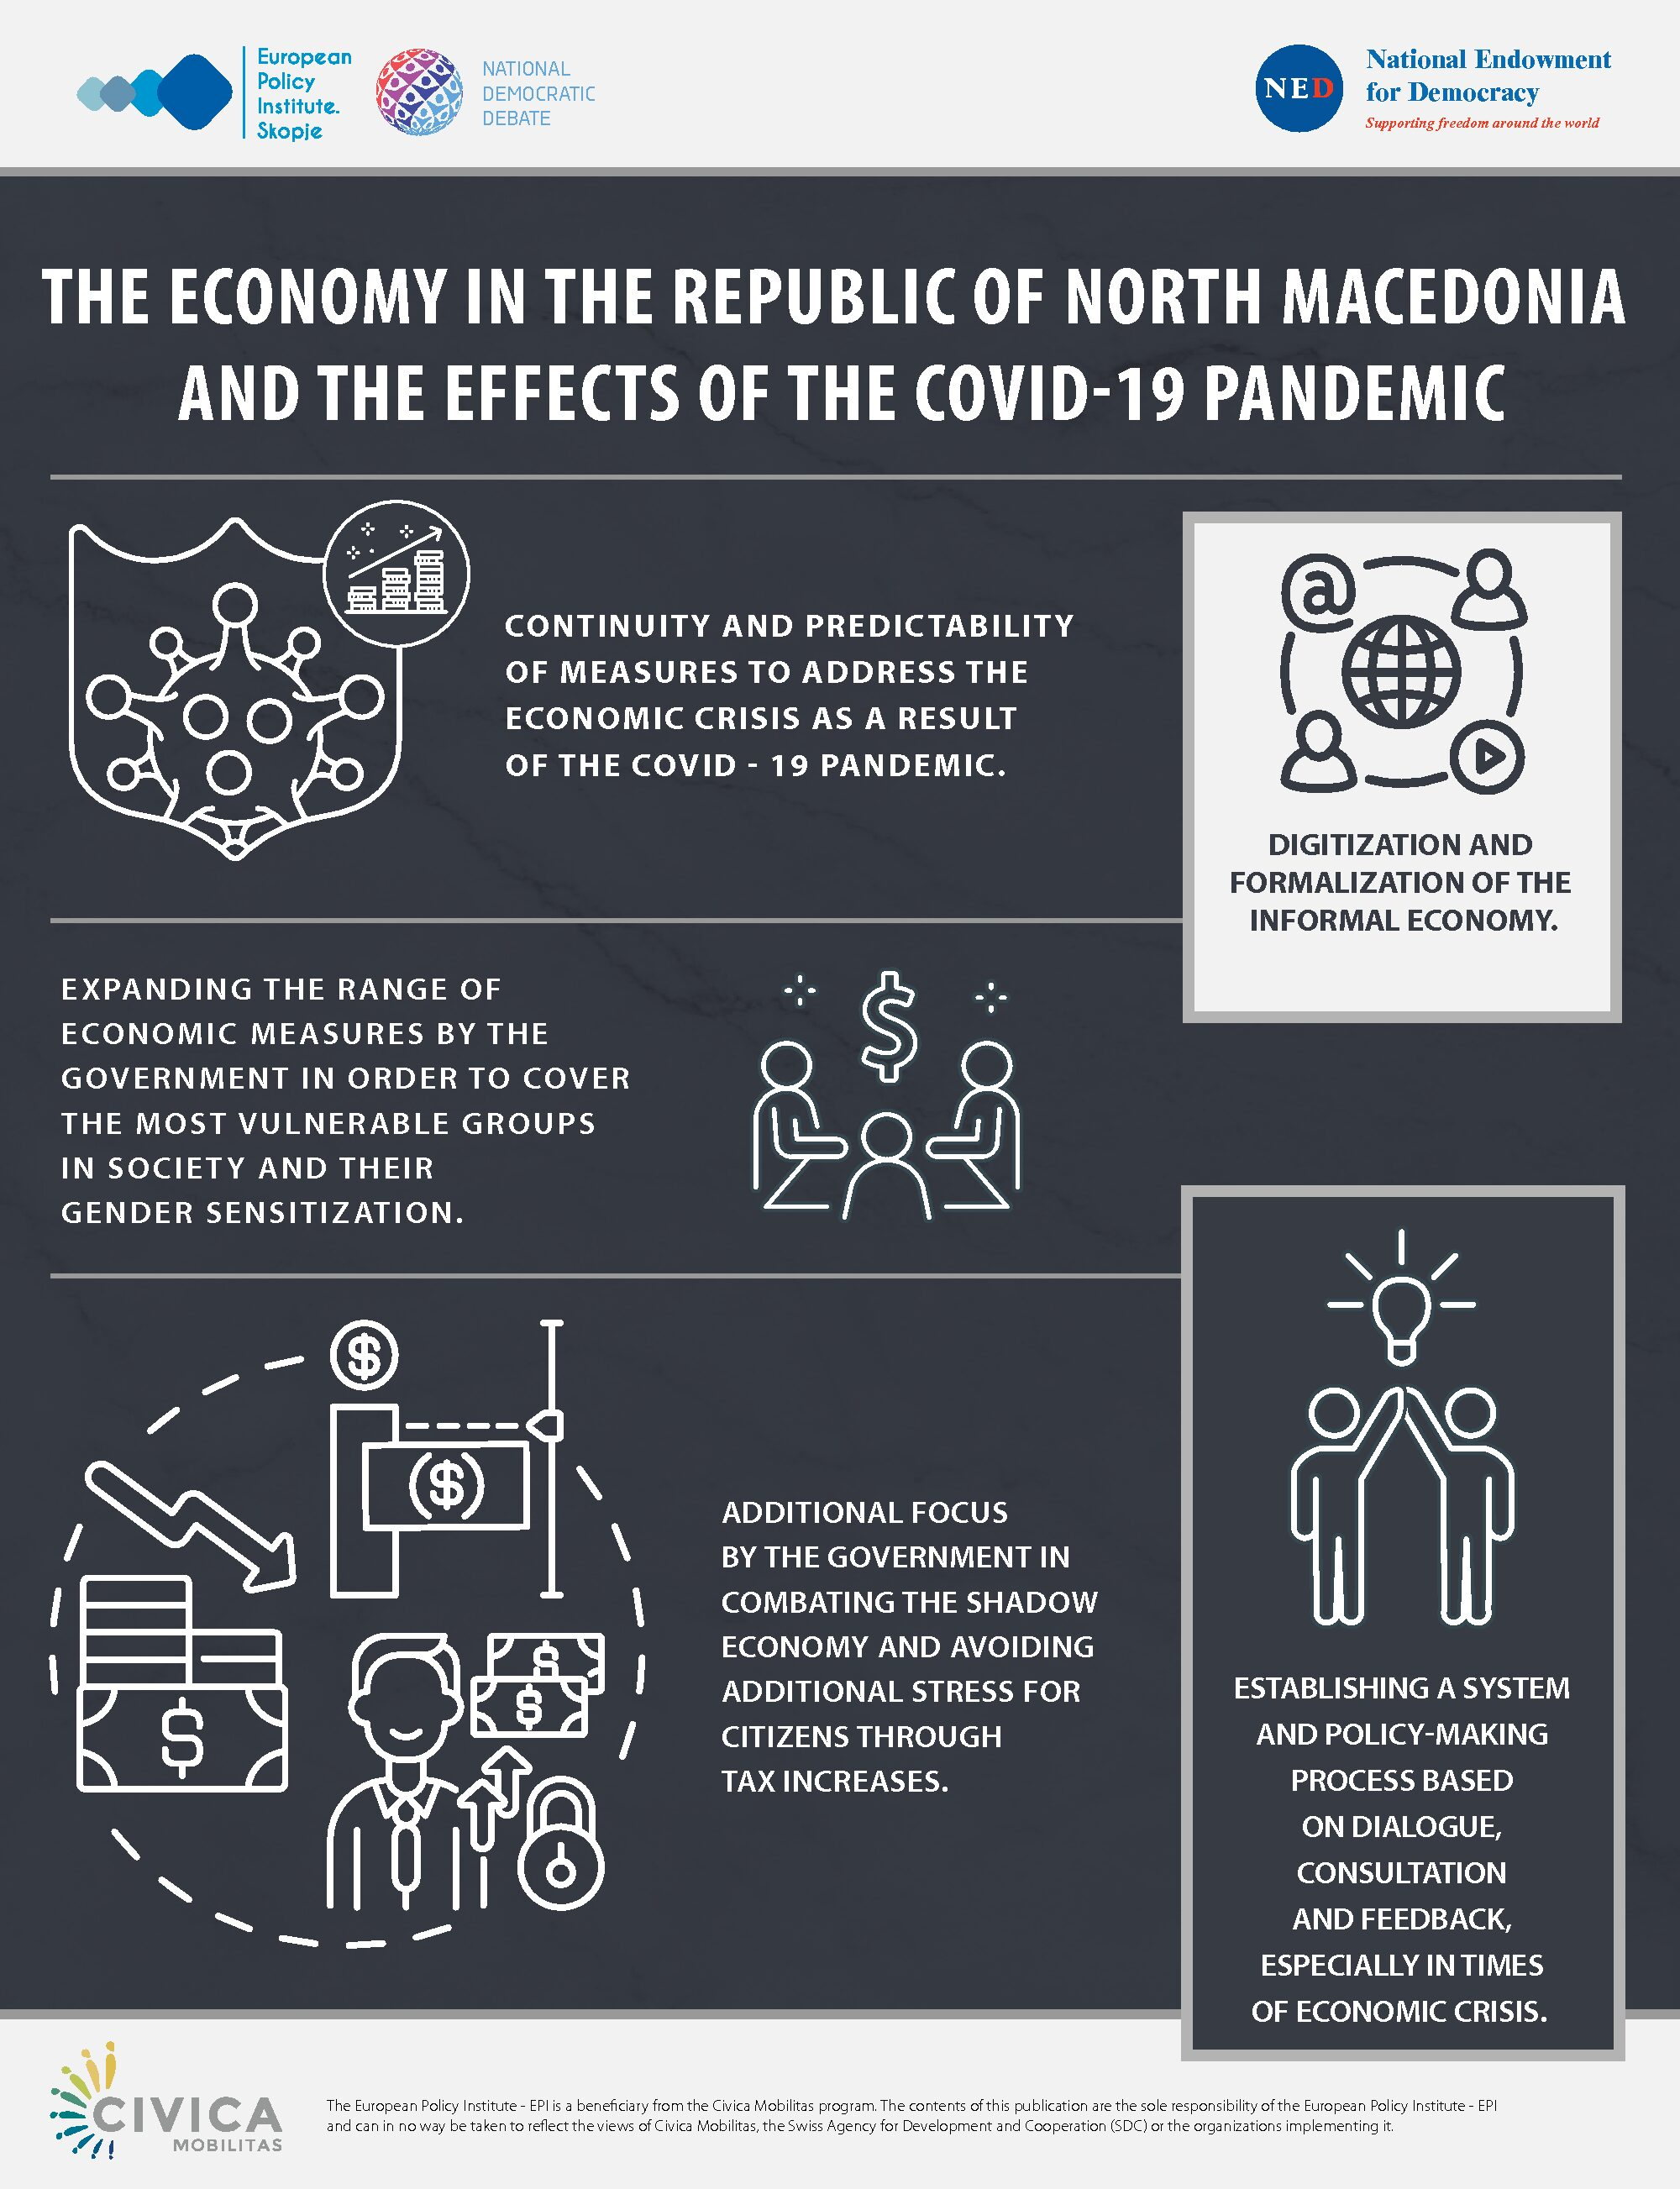 [Infographic] The economy in the Republic of North Macedonia and the efects of the COVID-19 pandemic